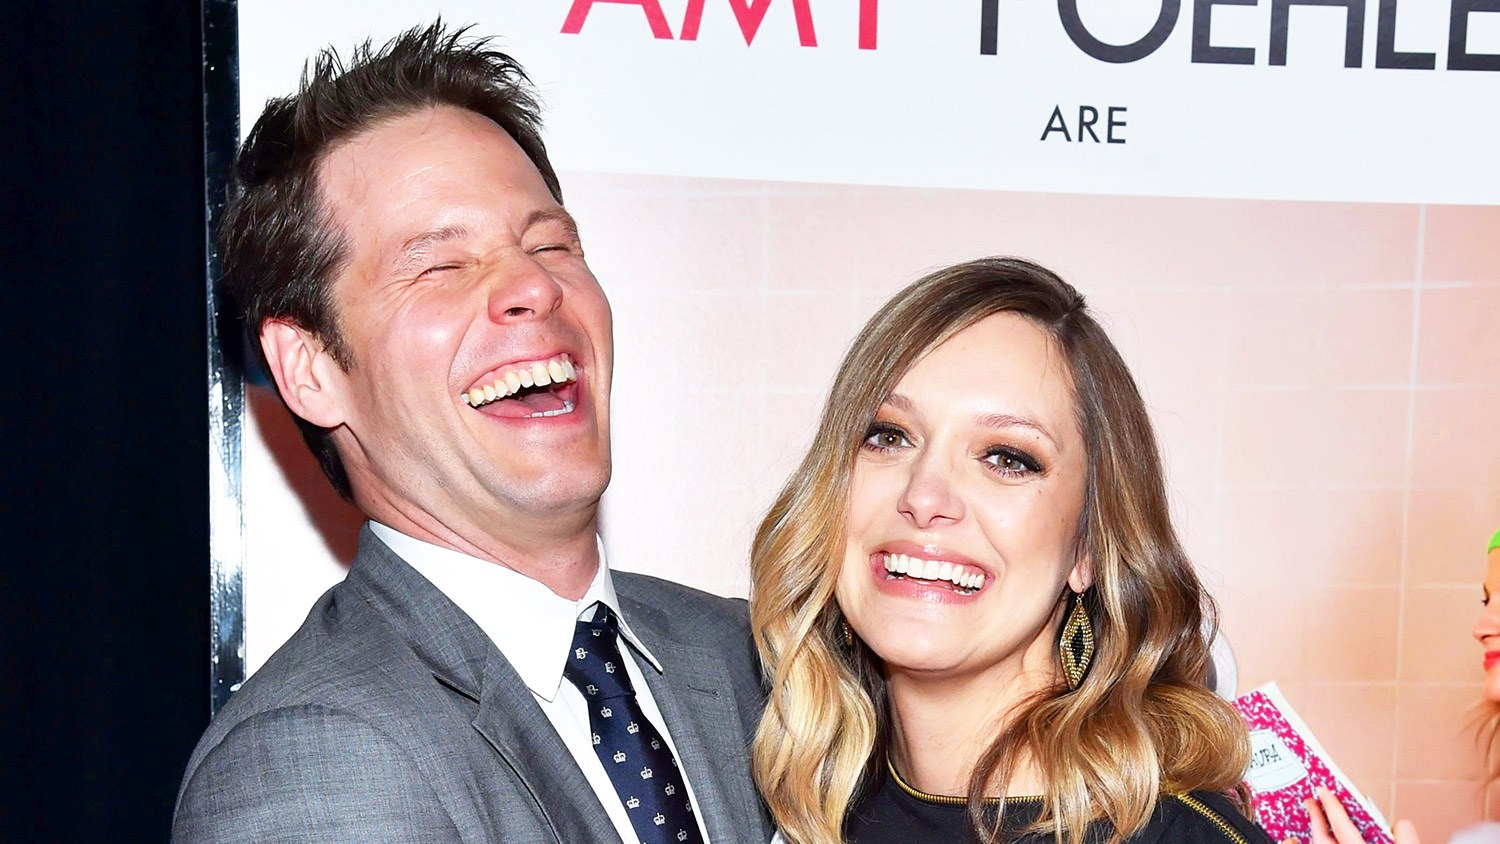 Mindy Project Star Ike Barinholtz And His Wife Are Expecting Their